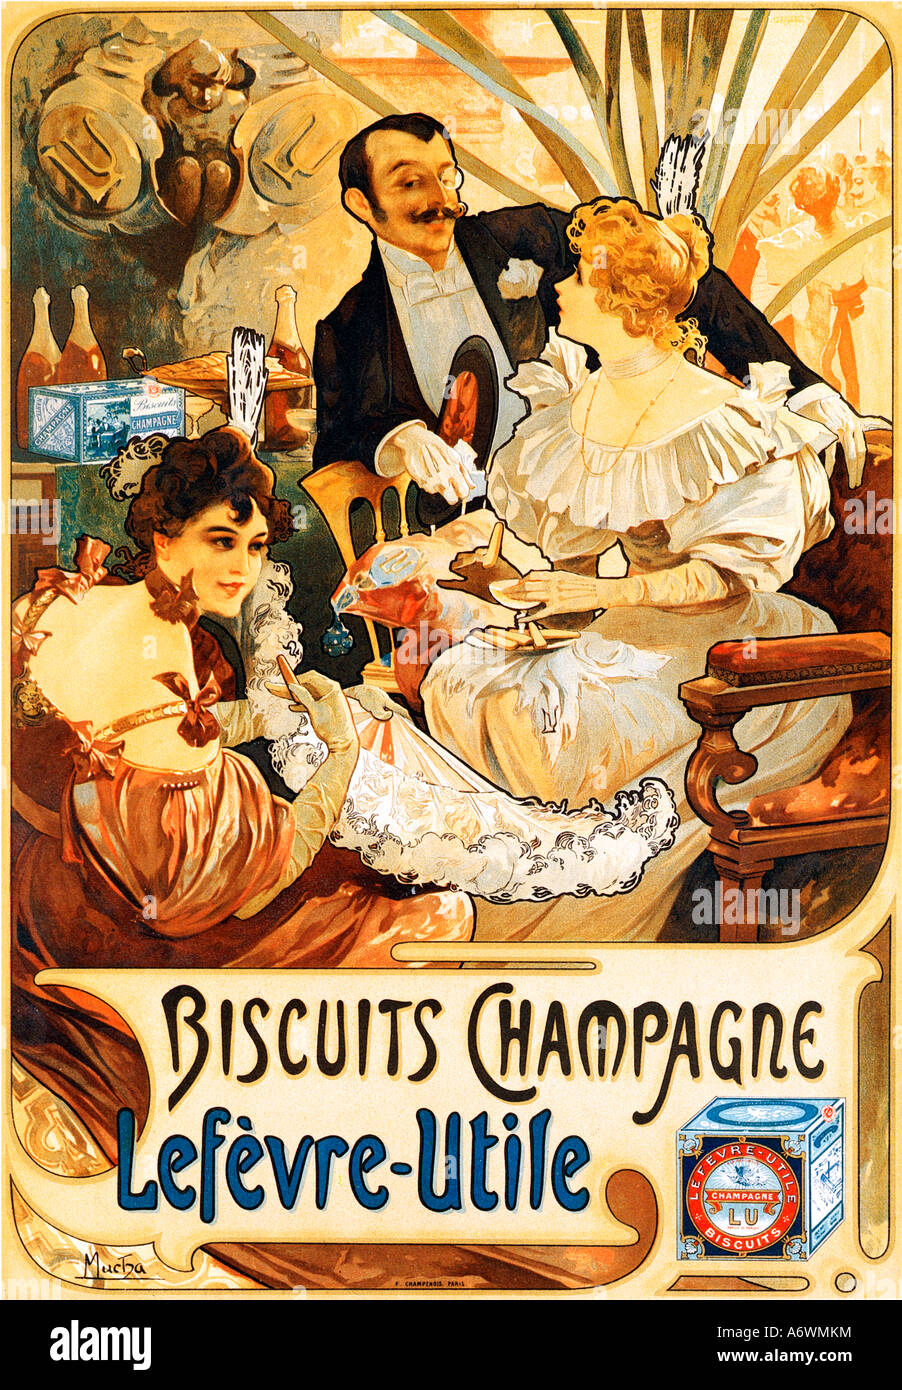 biscuits champagne 1896 affiche art nouveau alphonse mucha. Black Bedroom Furniture Sets. Home Design Ideas